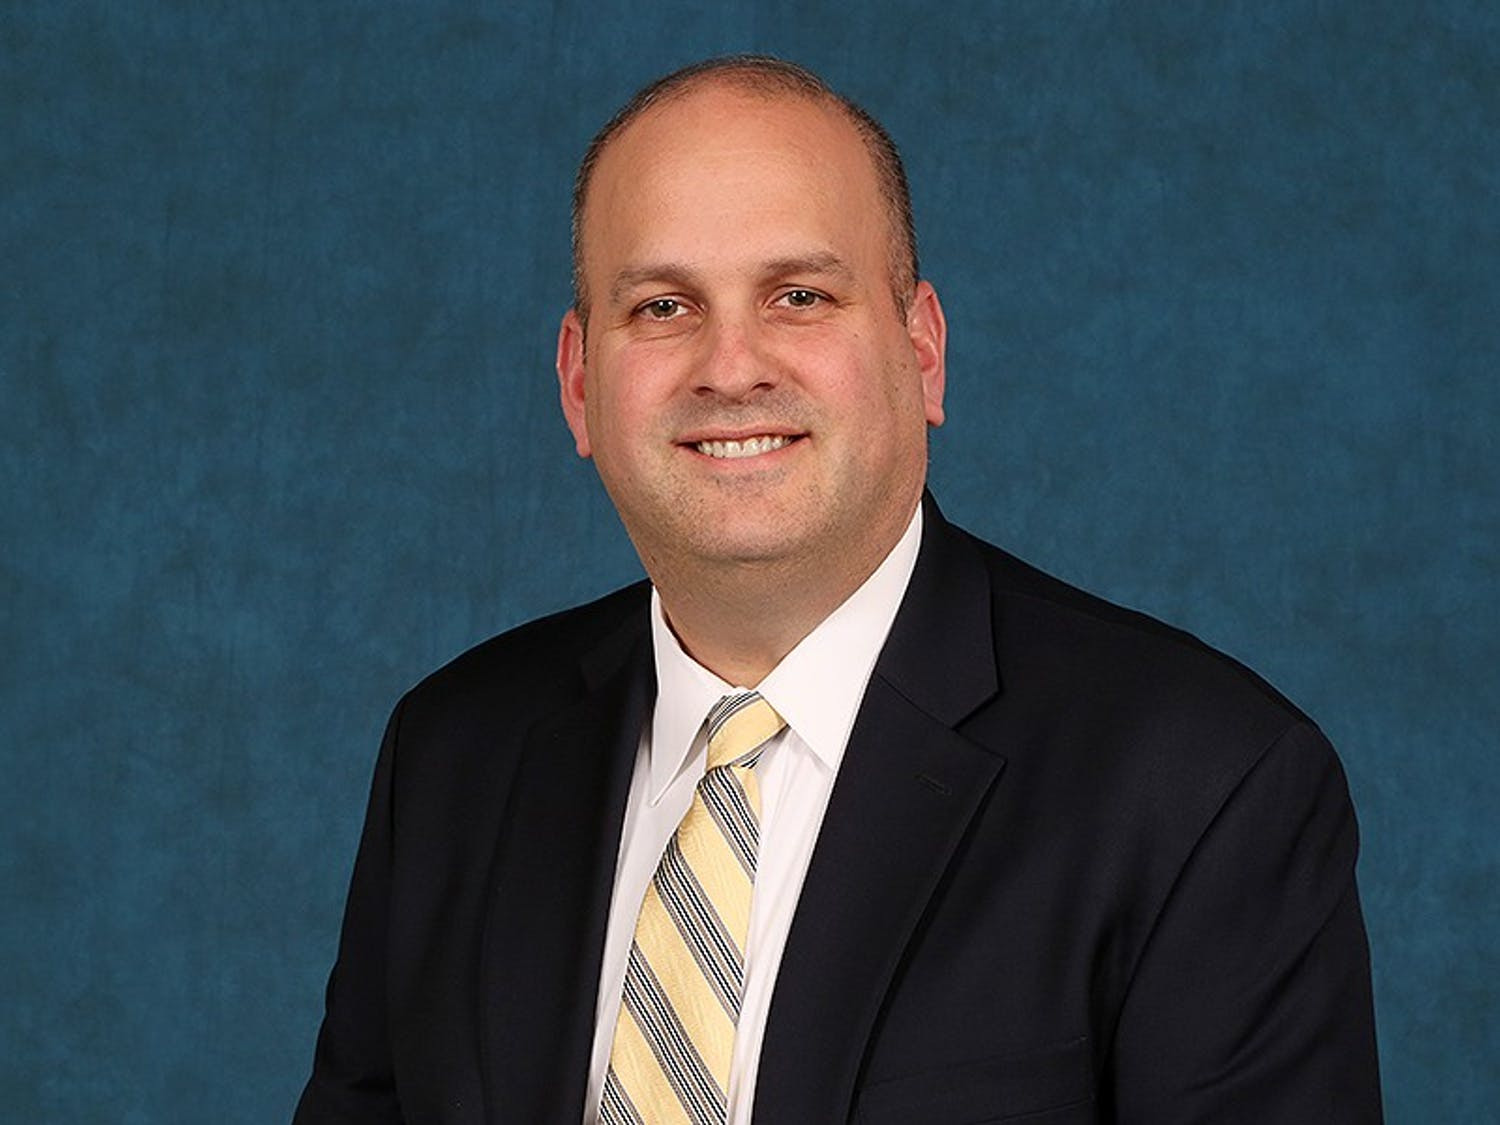 Brian Hamluk has been selected to serve as the university's vice president for student life, effective June 1, President Satish Tripathi announced in an email to the UB community Monday.